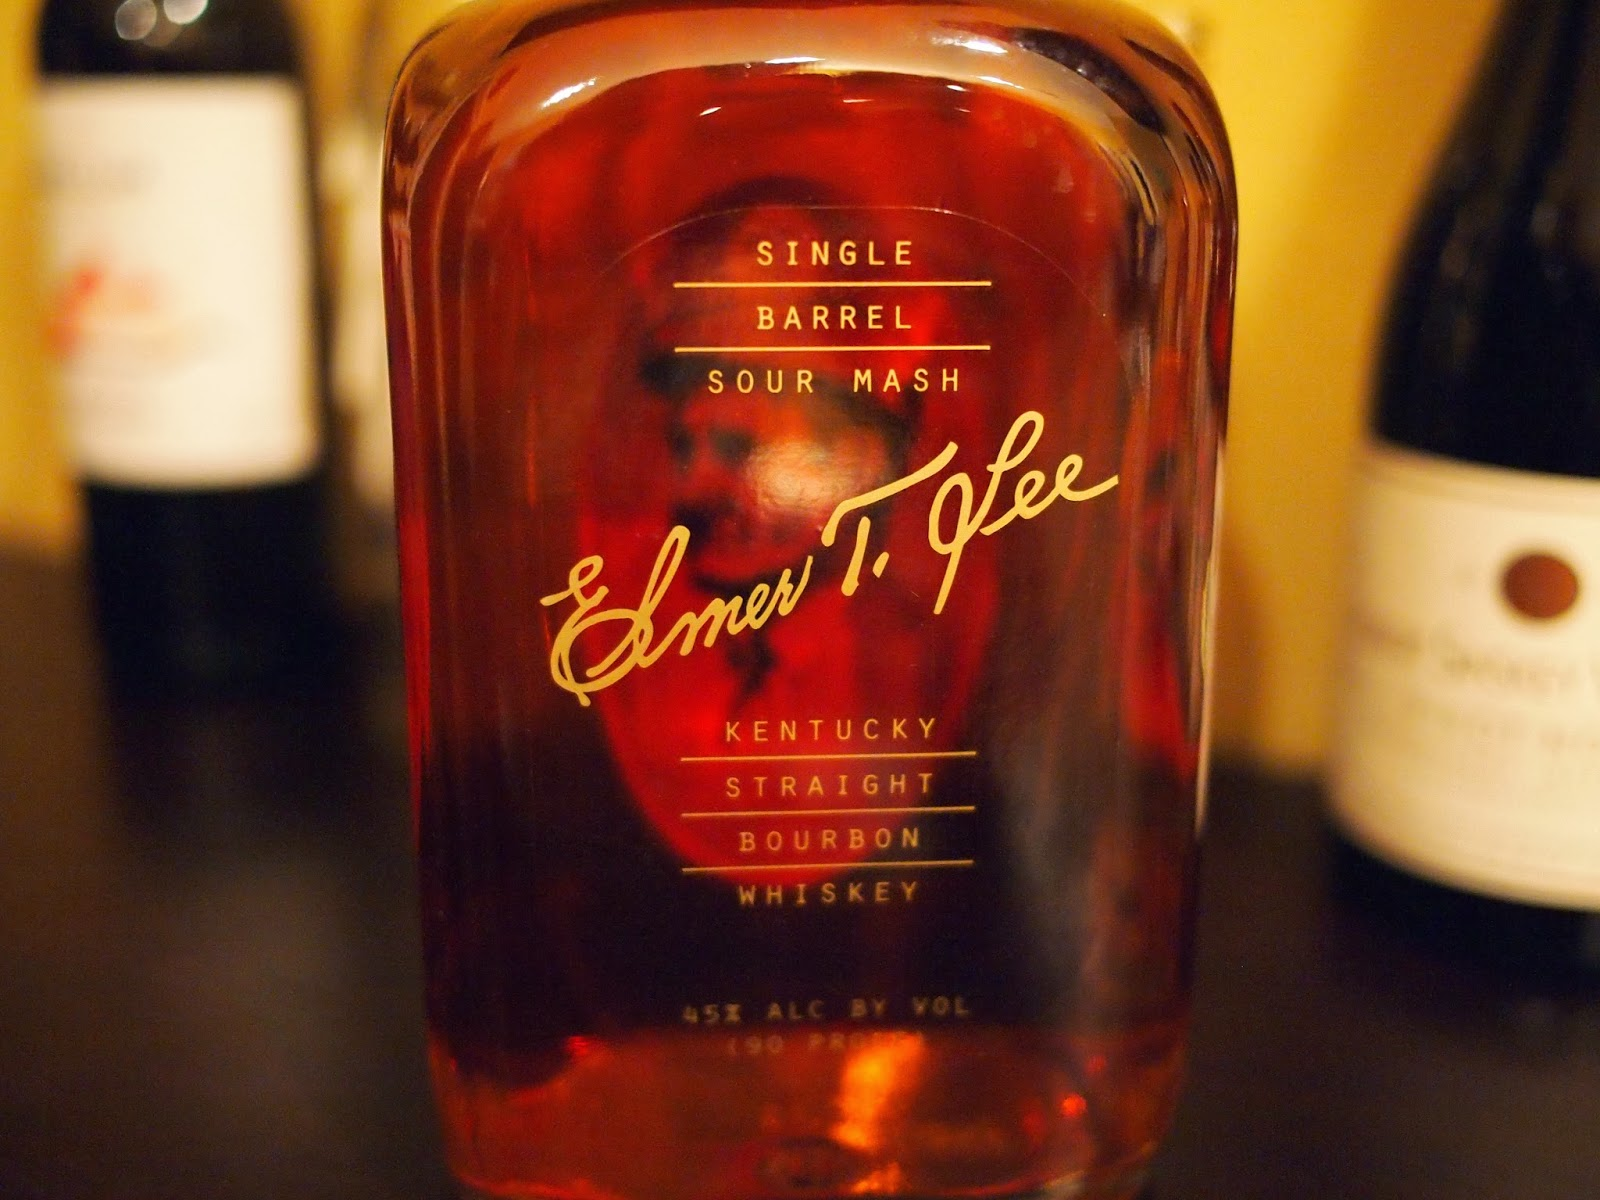 elmer singles Elmer t lee bourbon single barrel 750 ml elmer t lee single barrel sour mash kentucky straight bourbon whiskey has a delicious, nectar-like silkiness, and a wonderful smoothness.